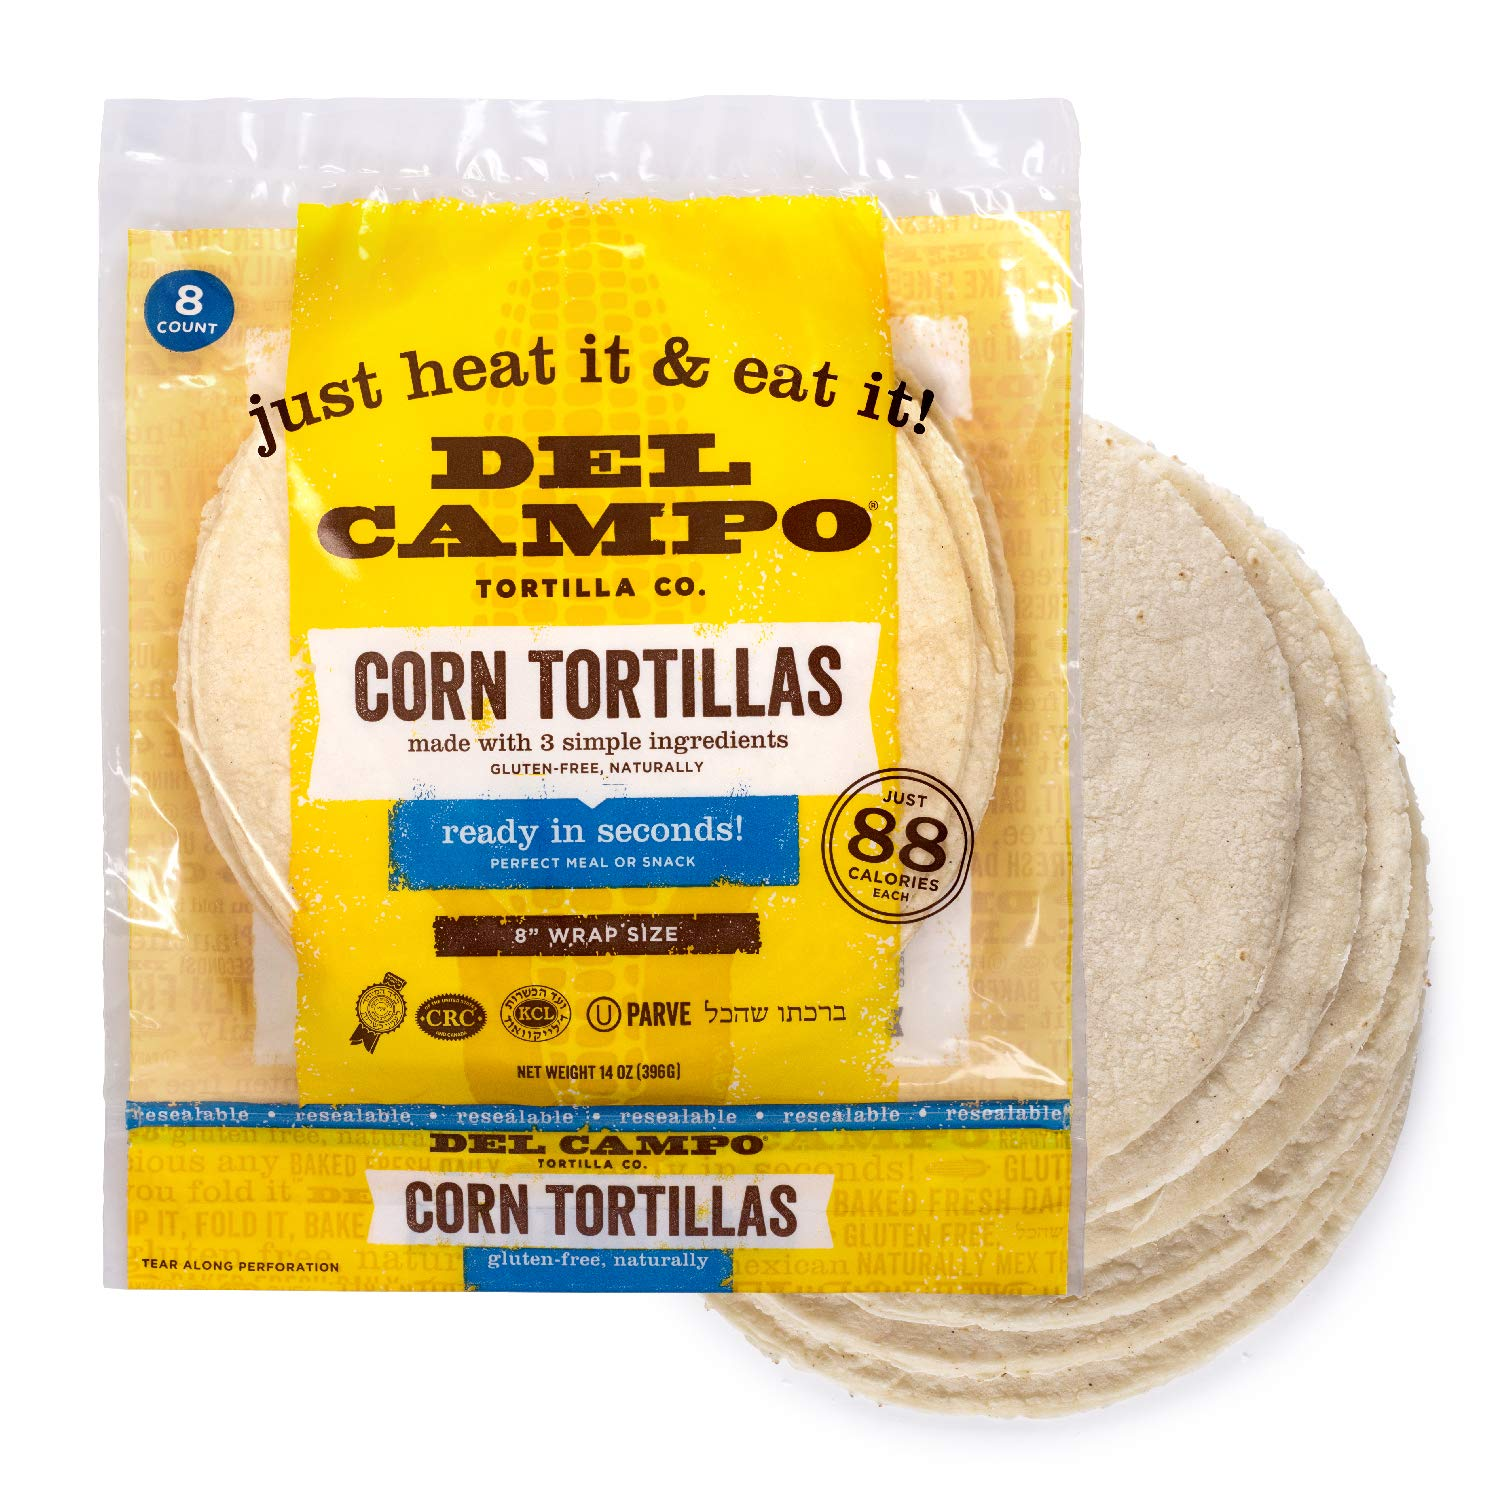 Del Campo Soft Corn Tortillas – 8 Inch Round. 100% Natural, Gluten Free and All-Corn Authentic Mexican Food. Many Serving Options: Wraps, Tacos, Quesadillas or Burritos, Kosher. (8ct.) (Single)